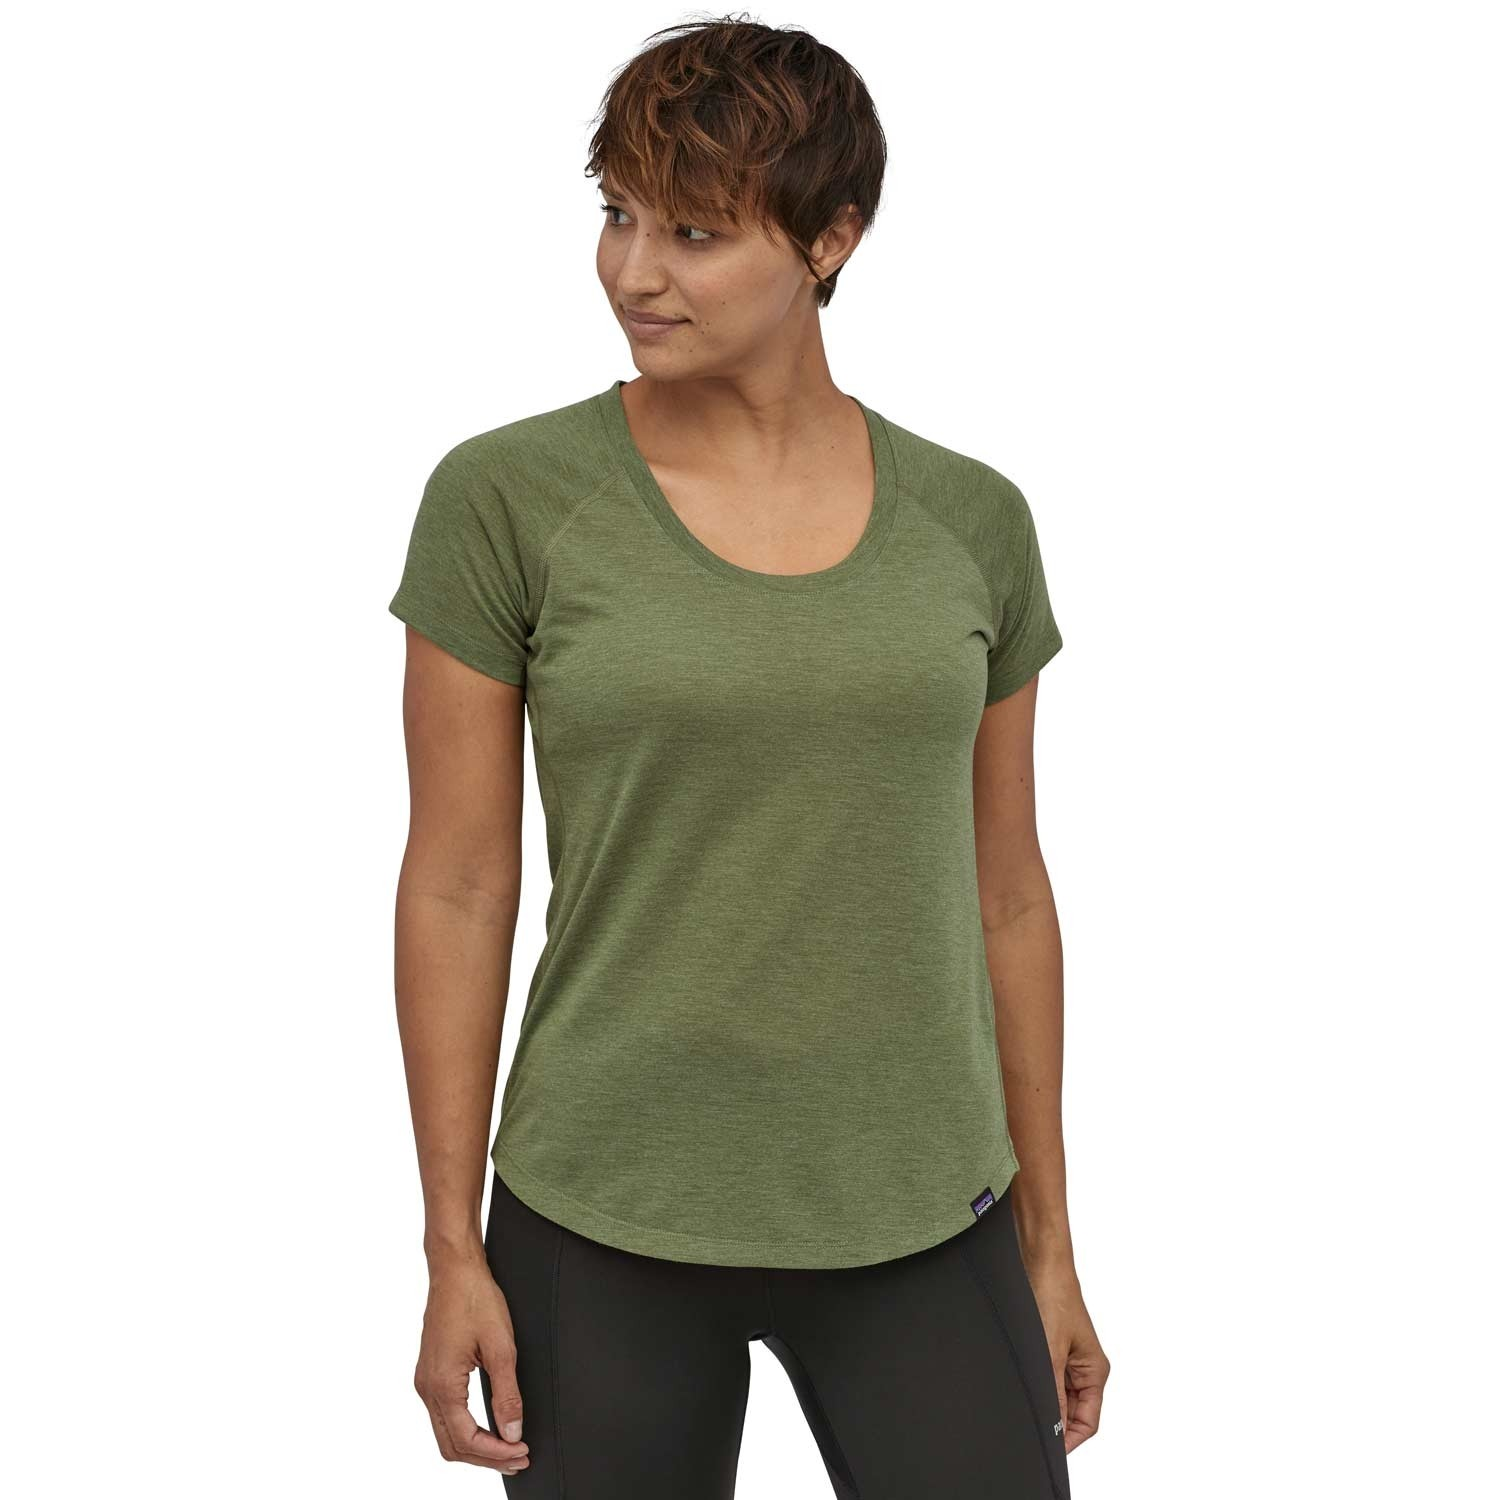 Patagonia Capilene Cool Trail Shirt - Women's - Camp Green